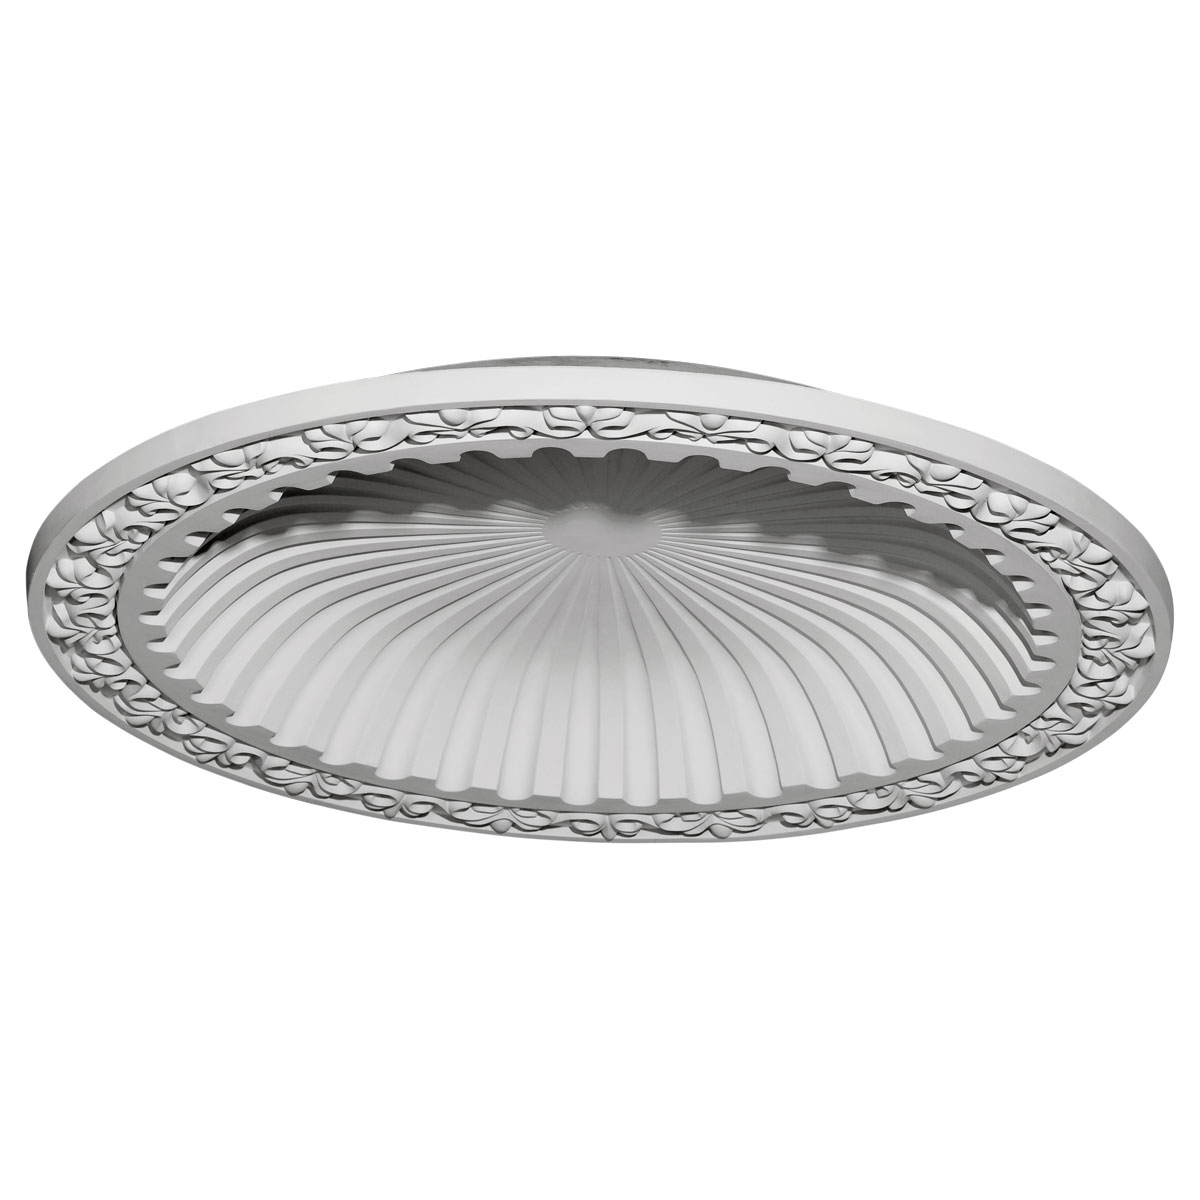 """DOME39MI 39-3/8""""OD x 31-1/8""""ID x 4-1/8""""D Milton Recessed Mount Ceiling Dome (33-1/2""""Diameter x 4""""D Rough Opening)"""